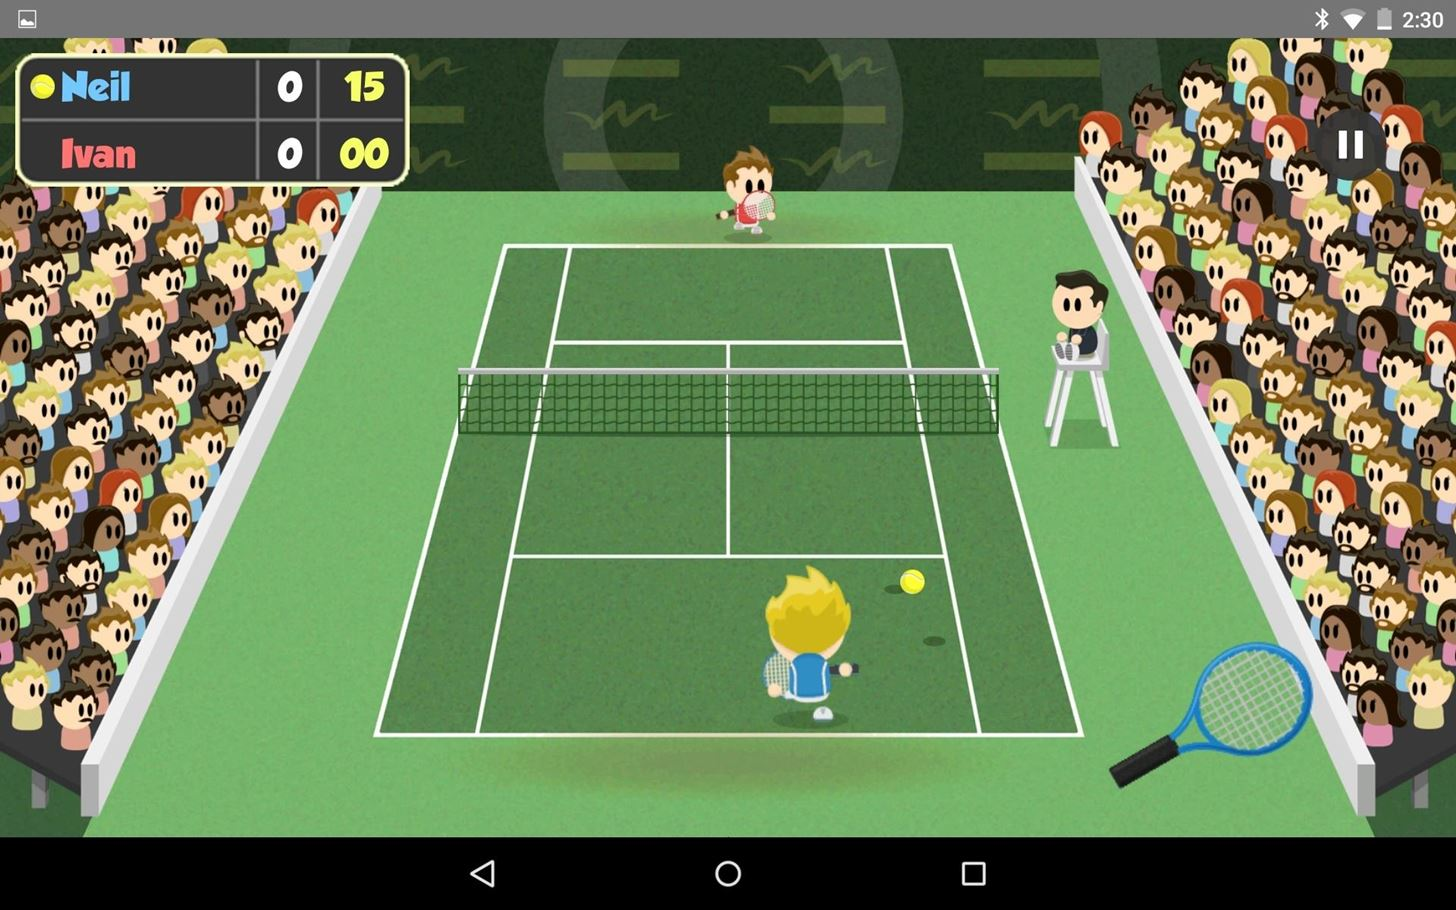 This Game Turns a Second Android Device into a Tennis Racket, Wiimote-Style